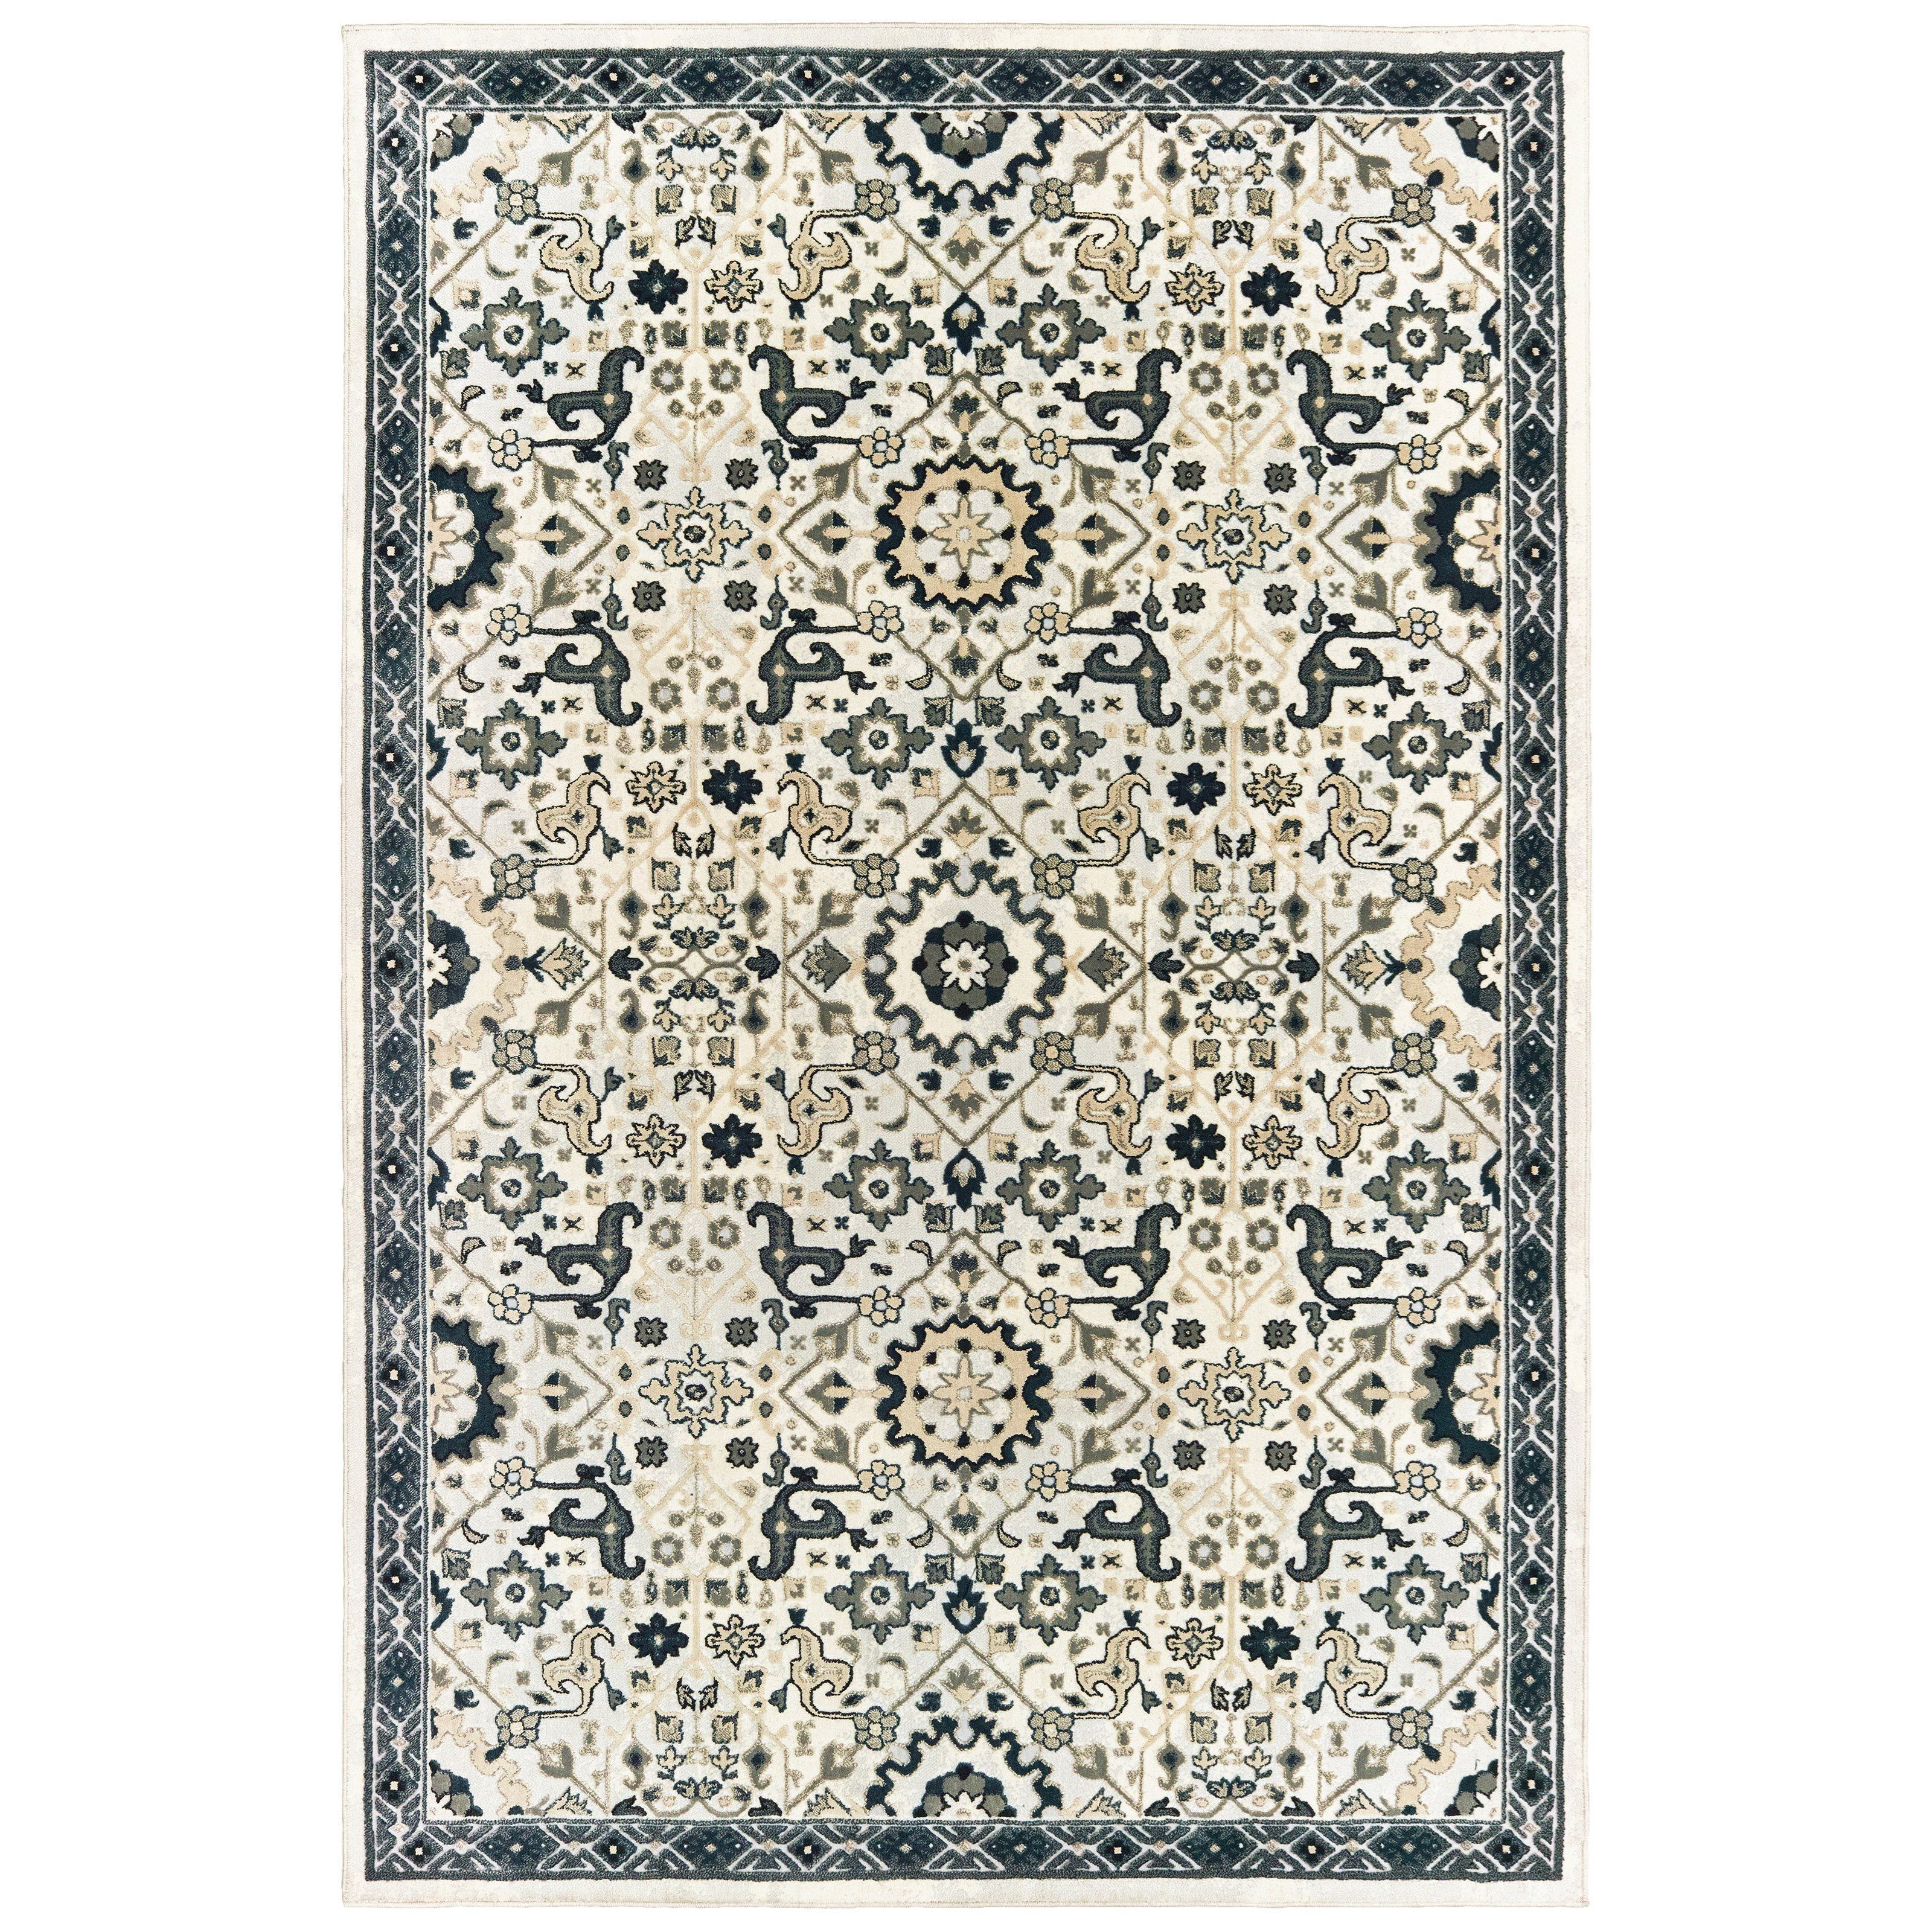 "9'10"" X 12'10"" Rectangle Rug"